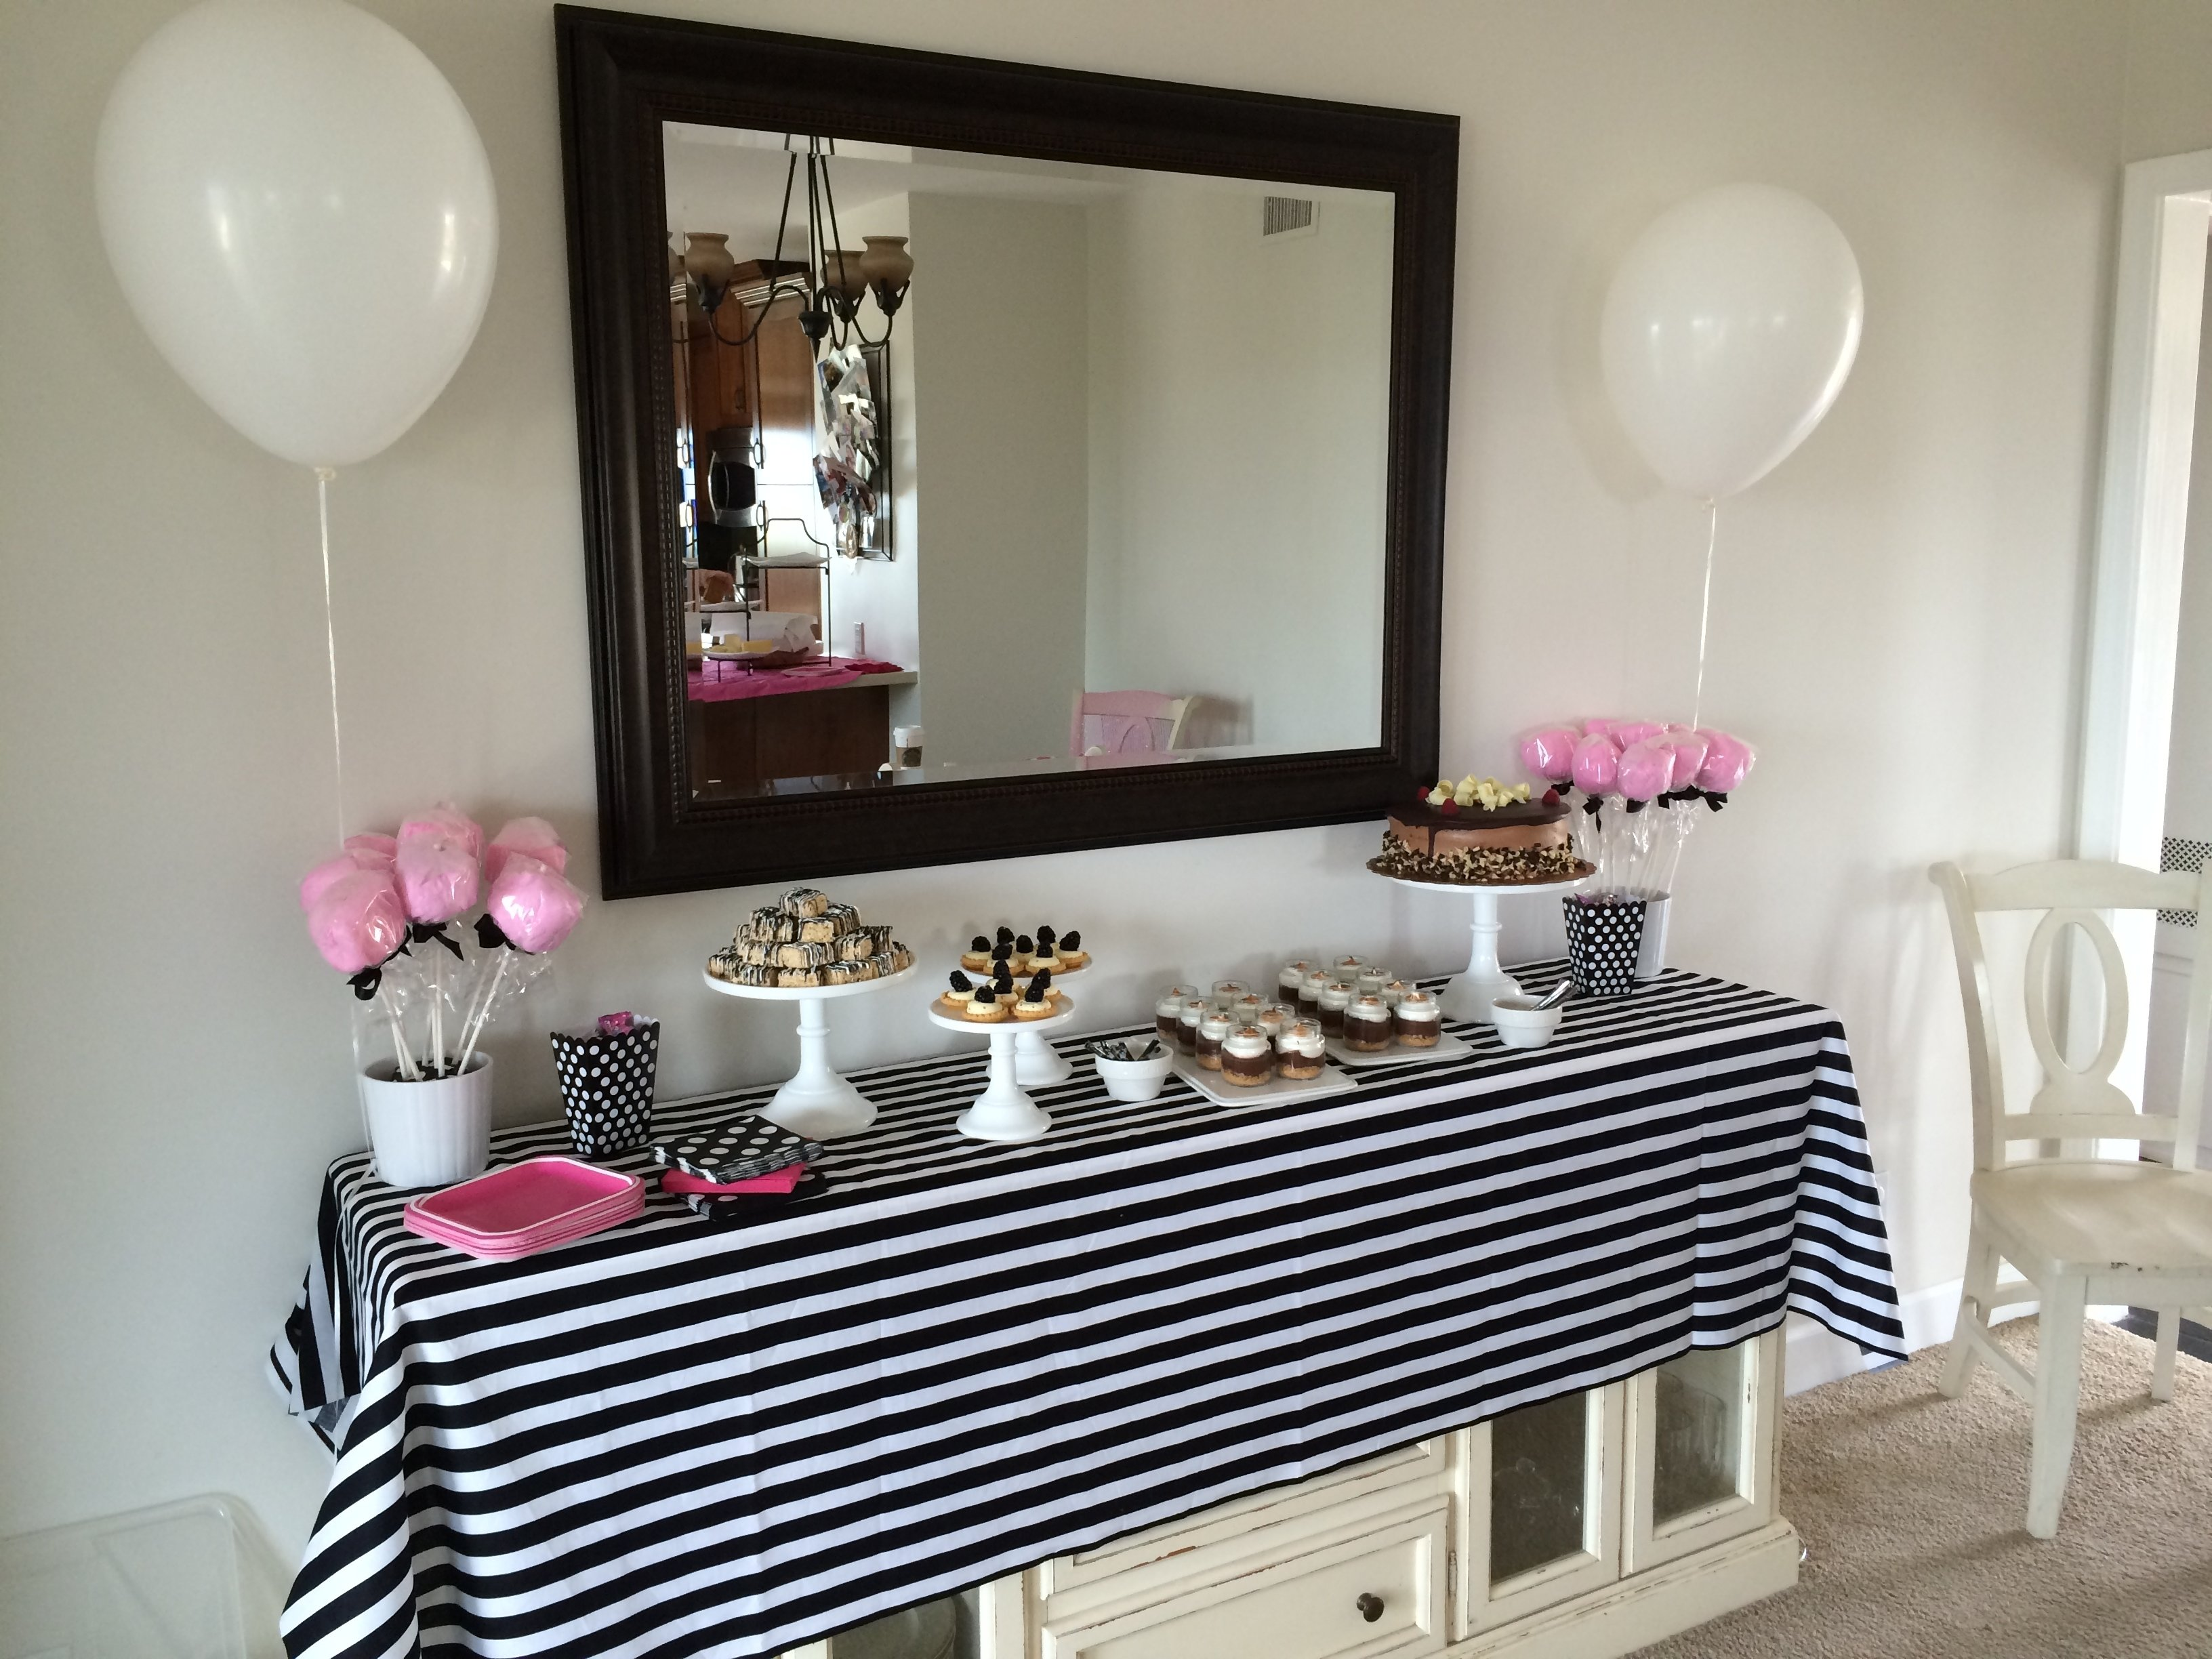 10 Great Black And White Baby Shower Ideas pink black and white baby shower meringue bake shop pink baby shower 2021